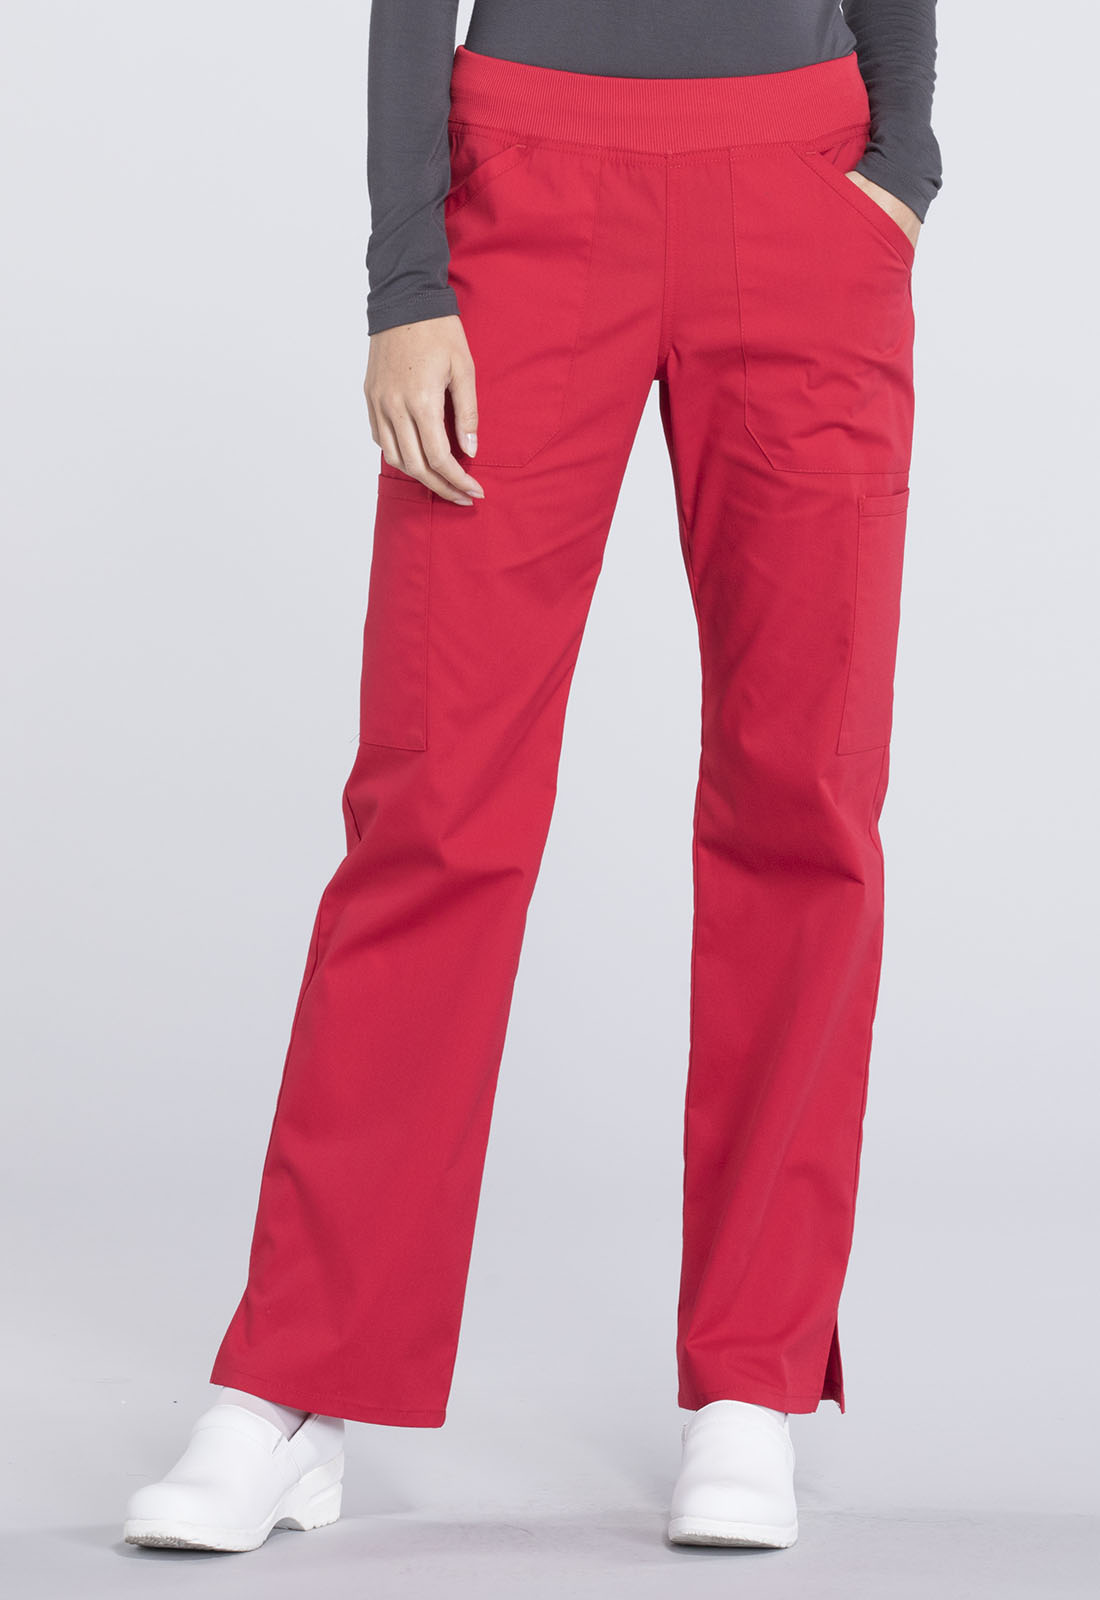 40d671c712b Cherokee Workwear. WW Professionals Mid Rise Straight Leg Pull-on Cargo Pant  in Red (Petite)